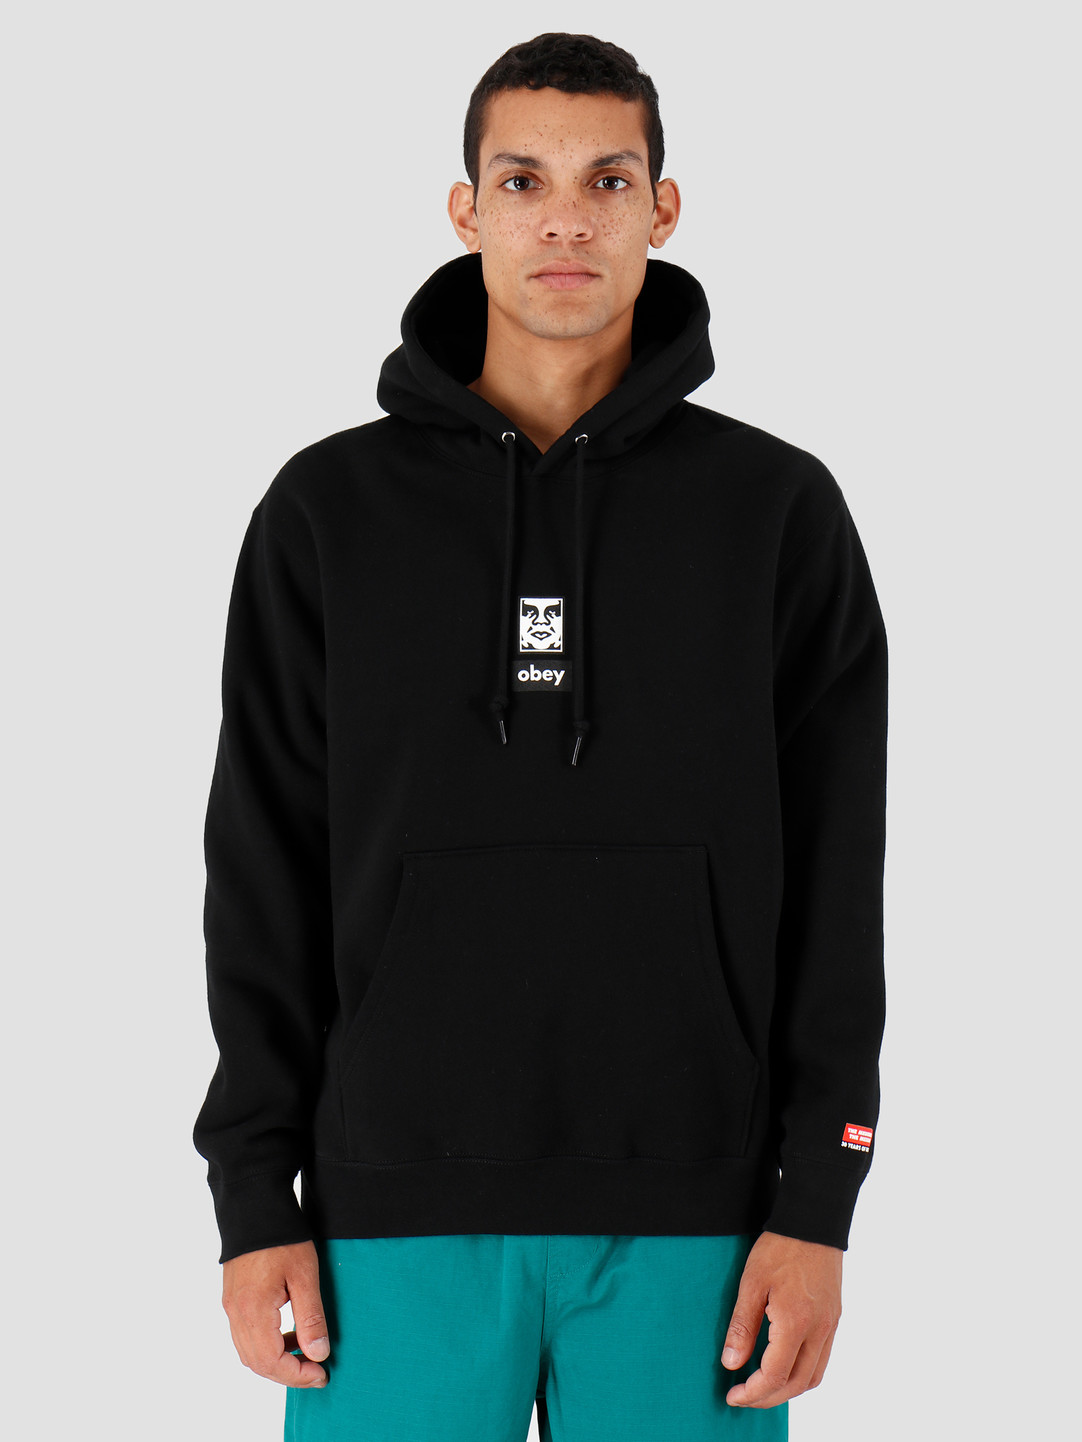 Obey Obey Icon Face 30 Years Black 112842253-BLK